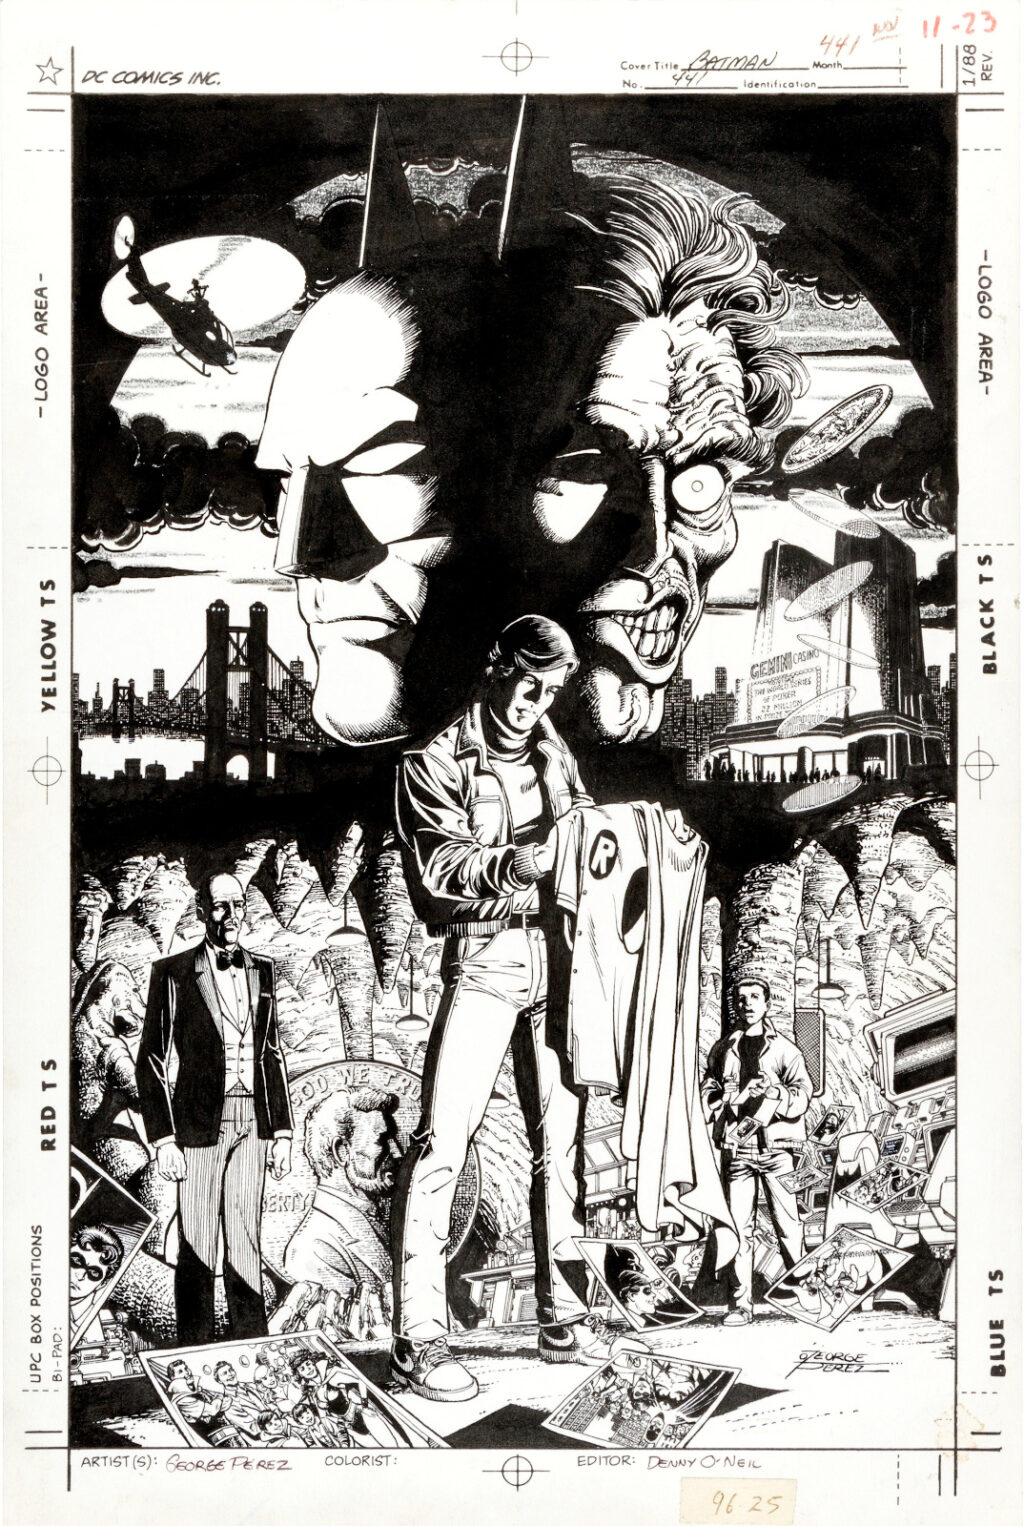 Batman issue 441 cover by George Perez